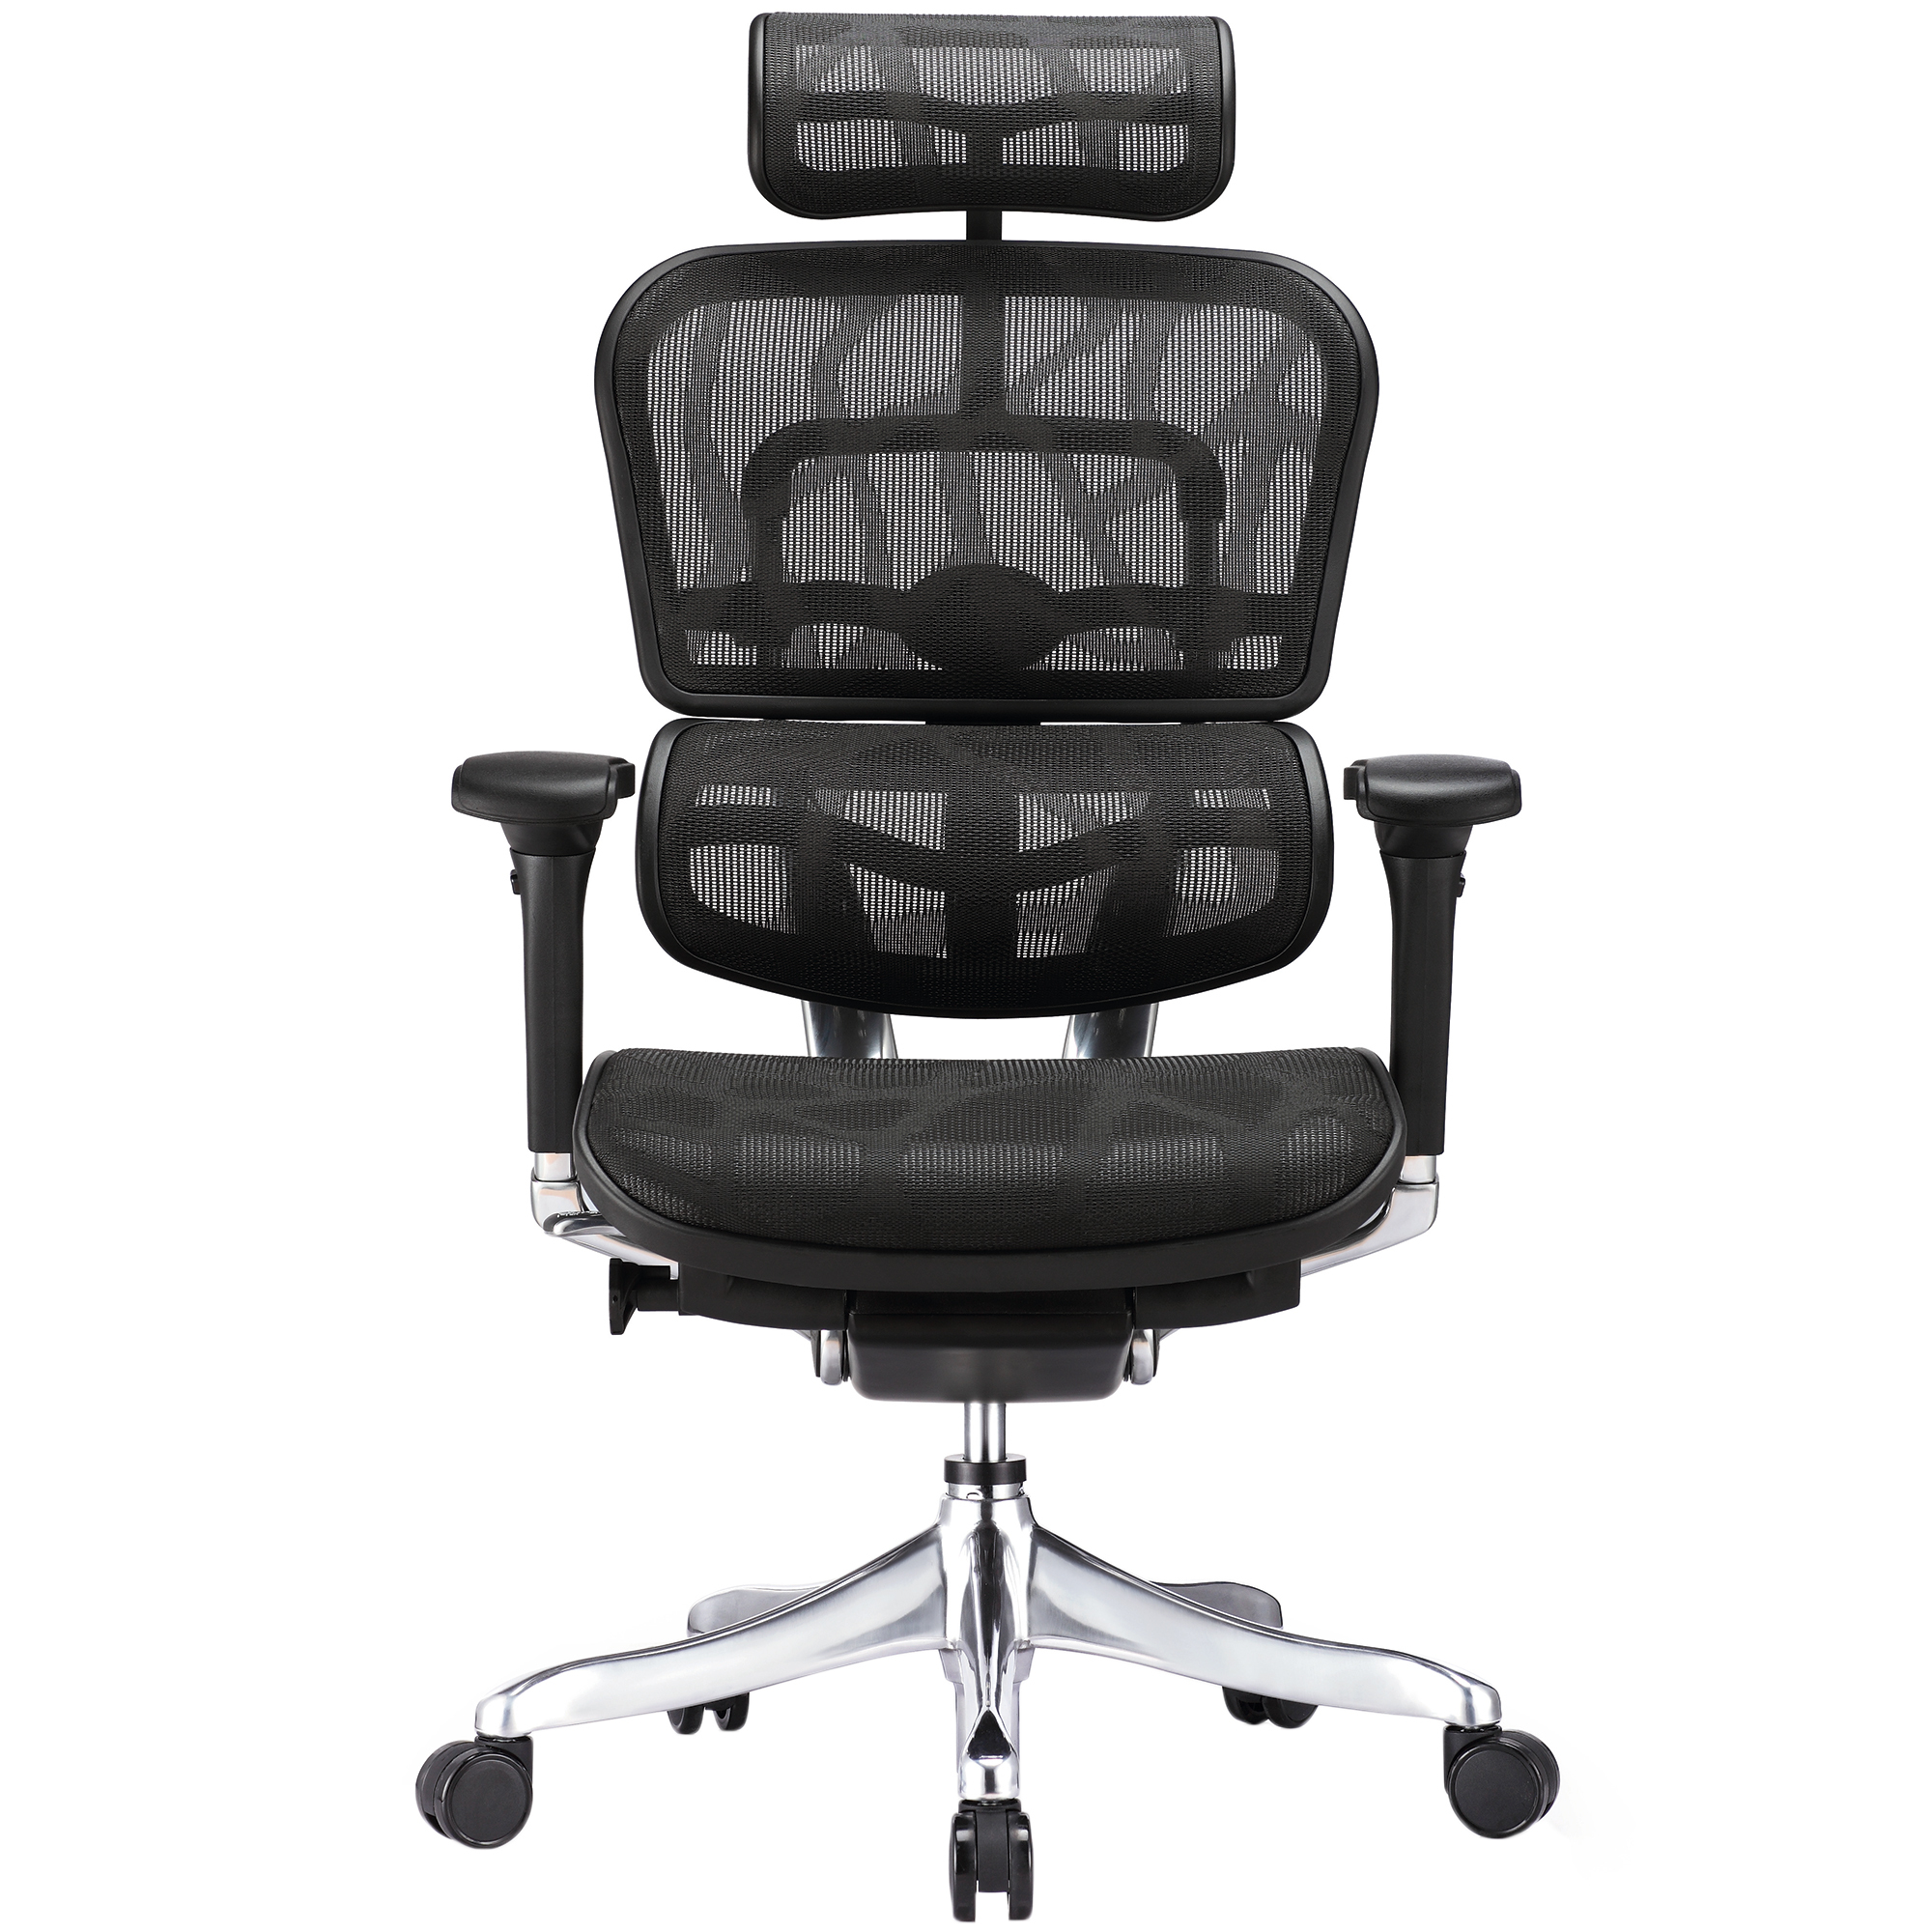 SKU #TPWT1012 Ergohuman V2 Plus Deluxe Mesh Office Chair is also sometimes listed under the following manufacturer numbers COEGPZBM  sc 1 st  Temple u0026 Webster & Milan Direct Ergohuman V2 Plus Deluxe Mesh Office Chair u0026 Reviews ...